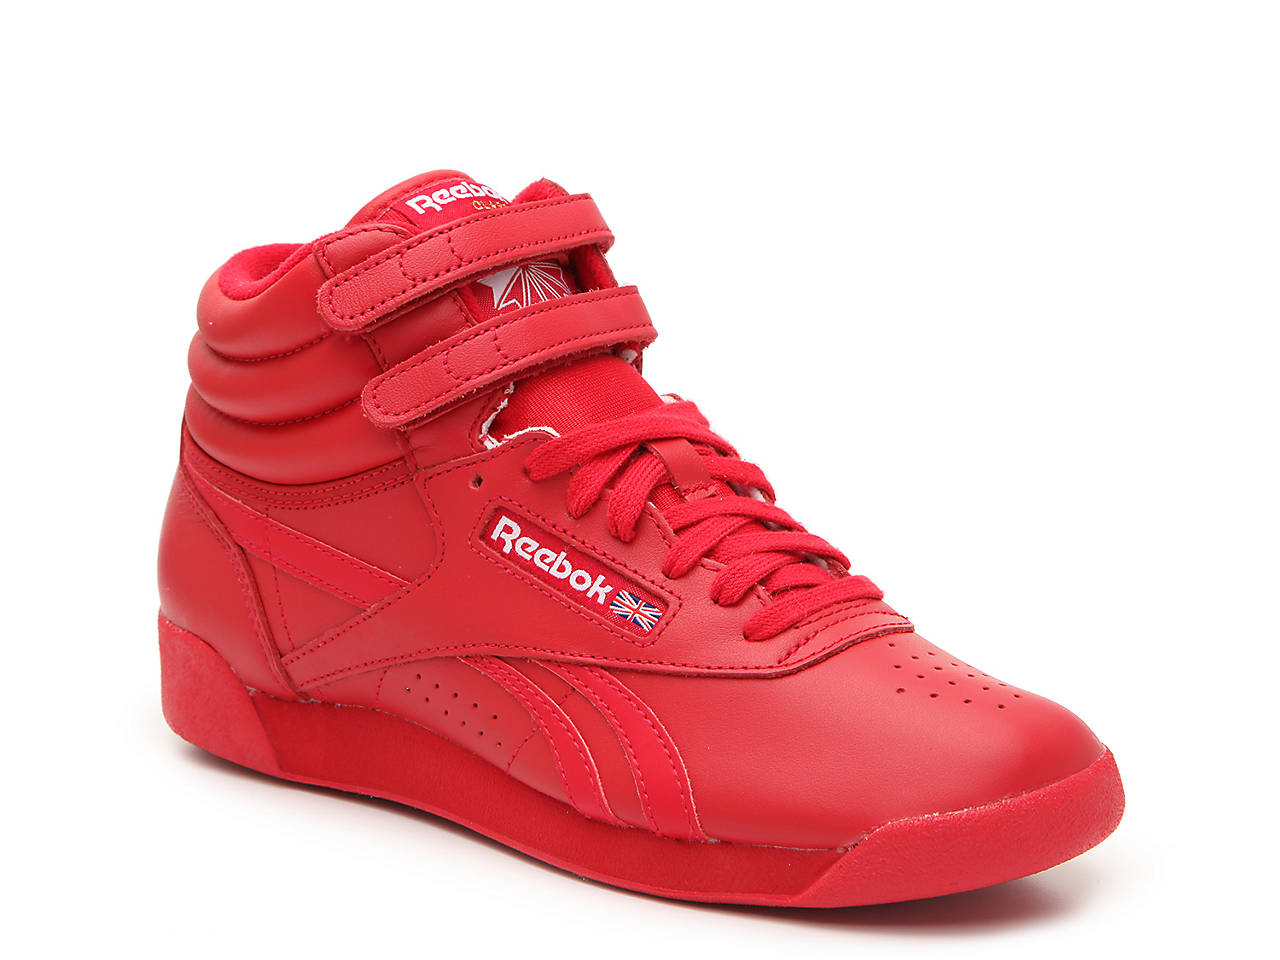 bdc01fd2675 Reebok Freestyle Hi High-Top Sneaker - Women s Women s Shoes